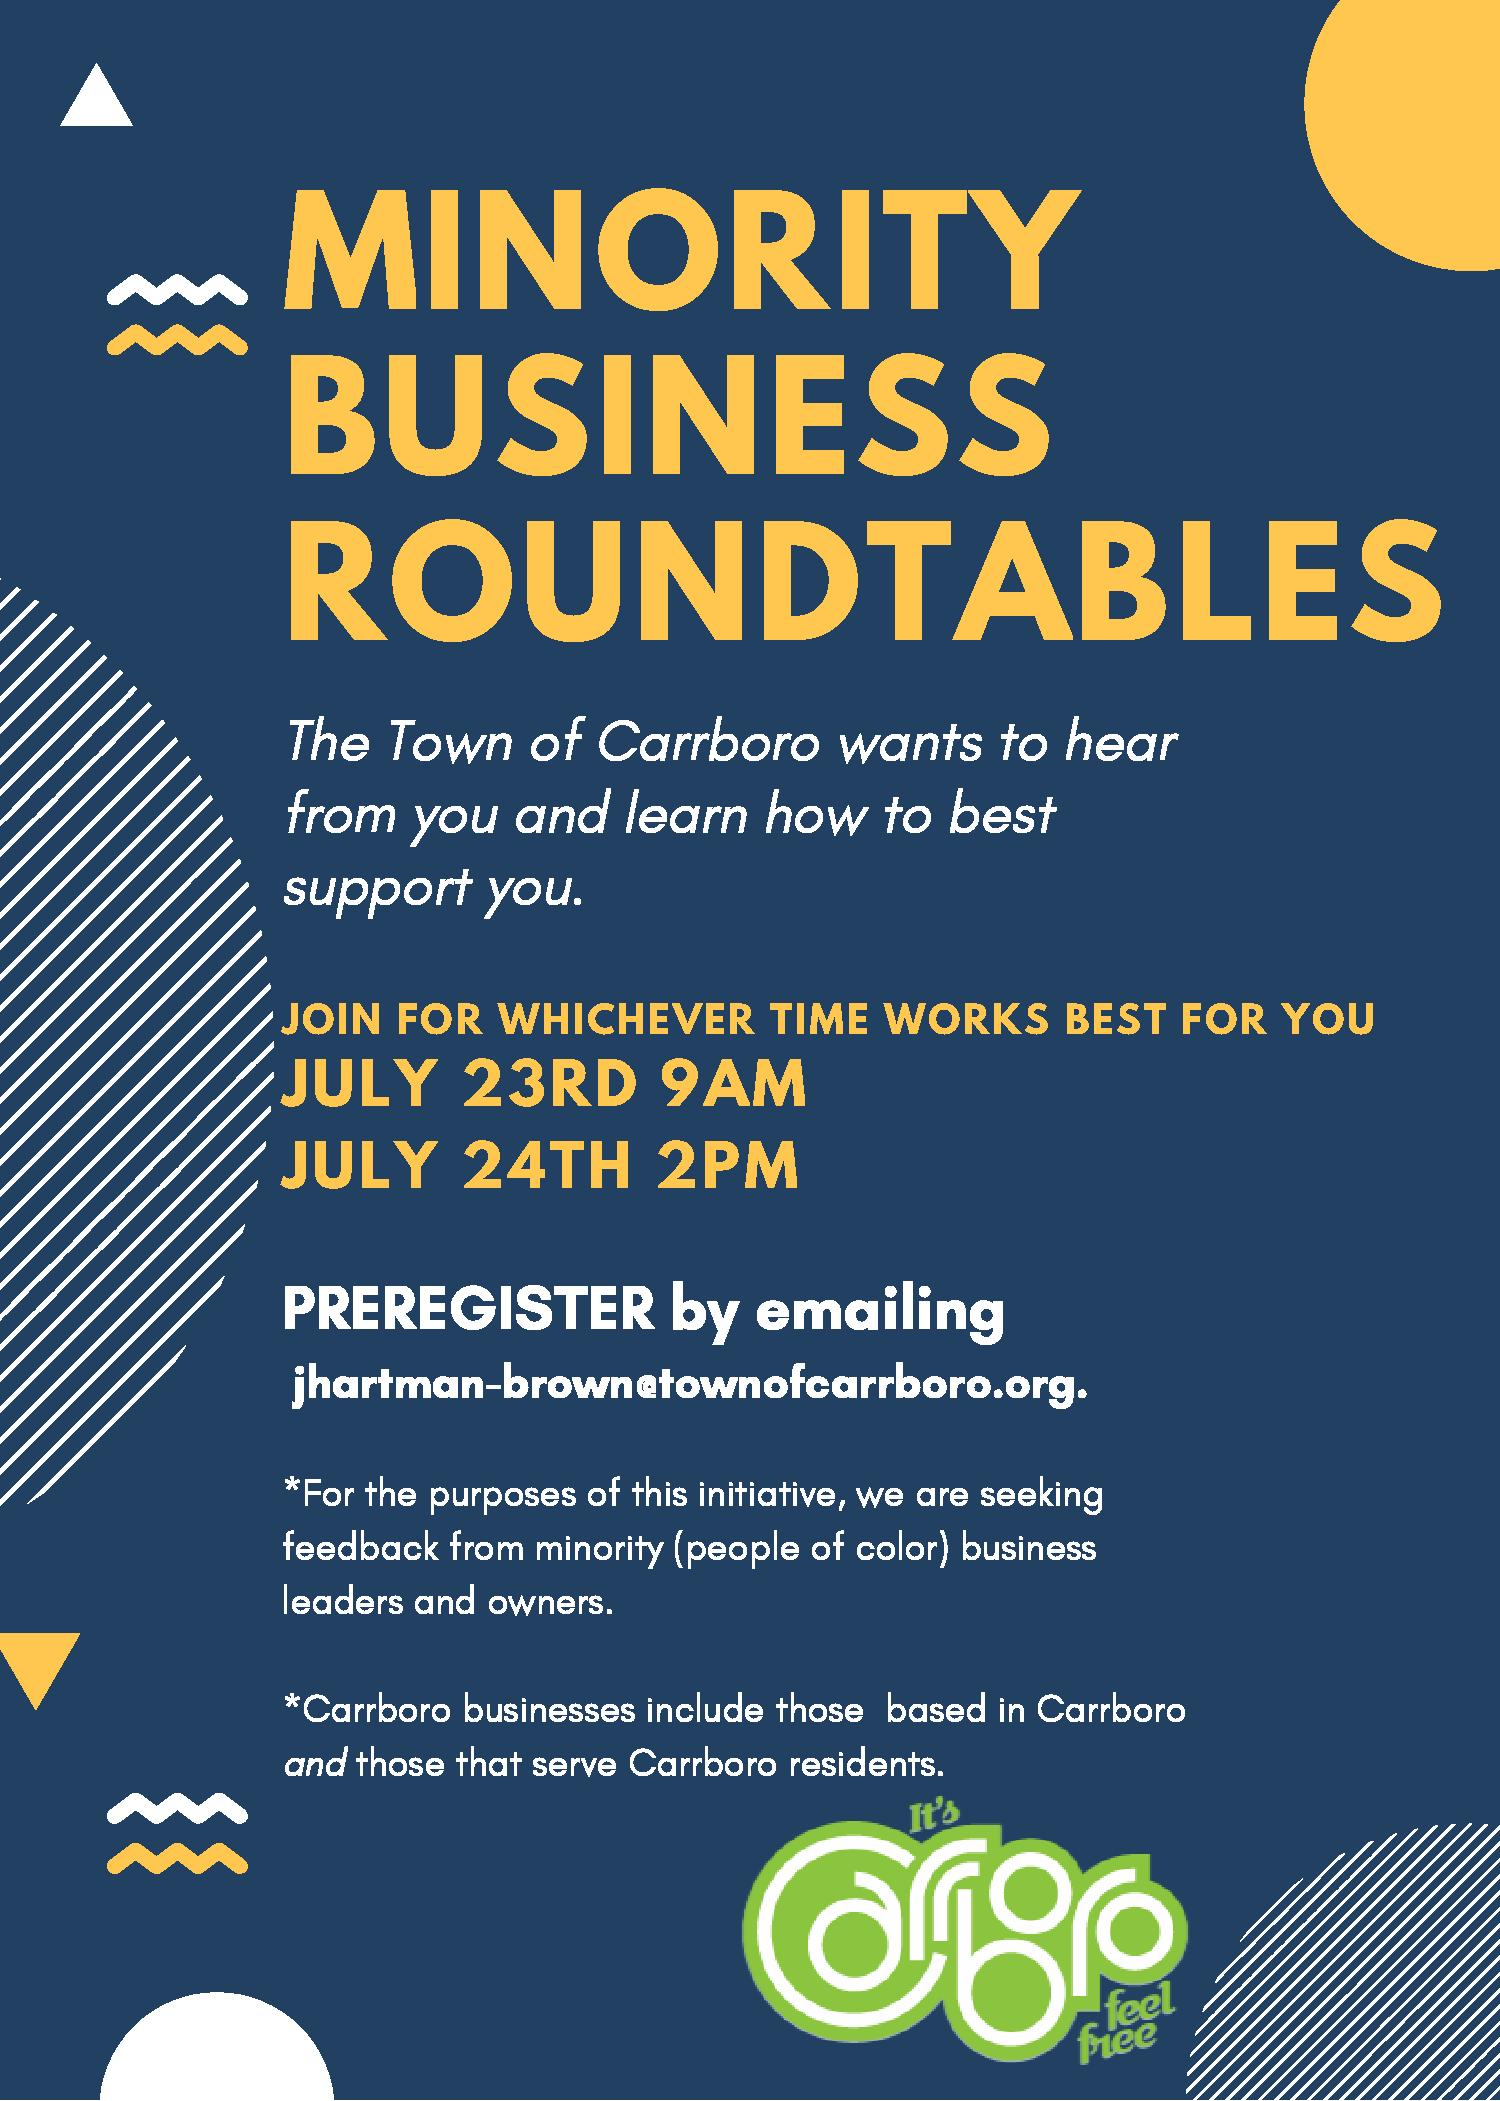 Minority Roundtables Flyer